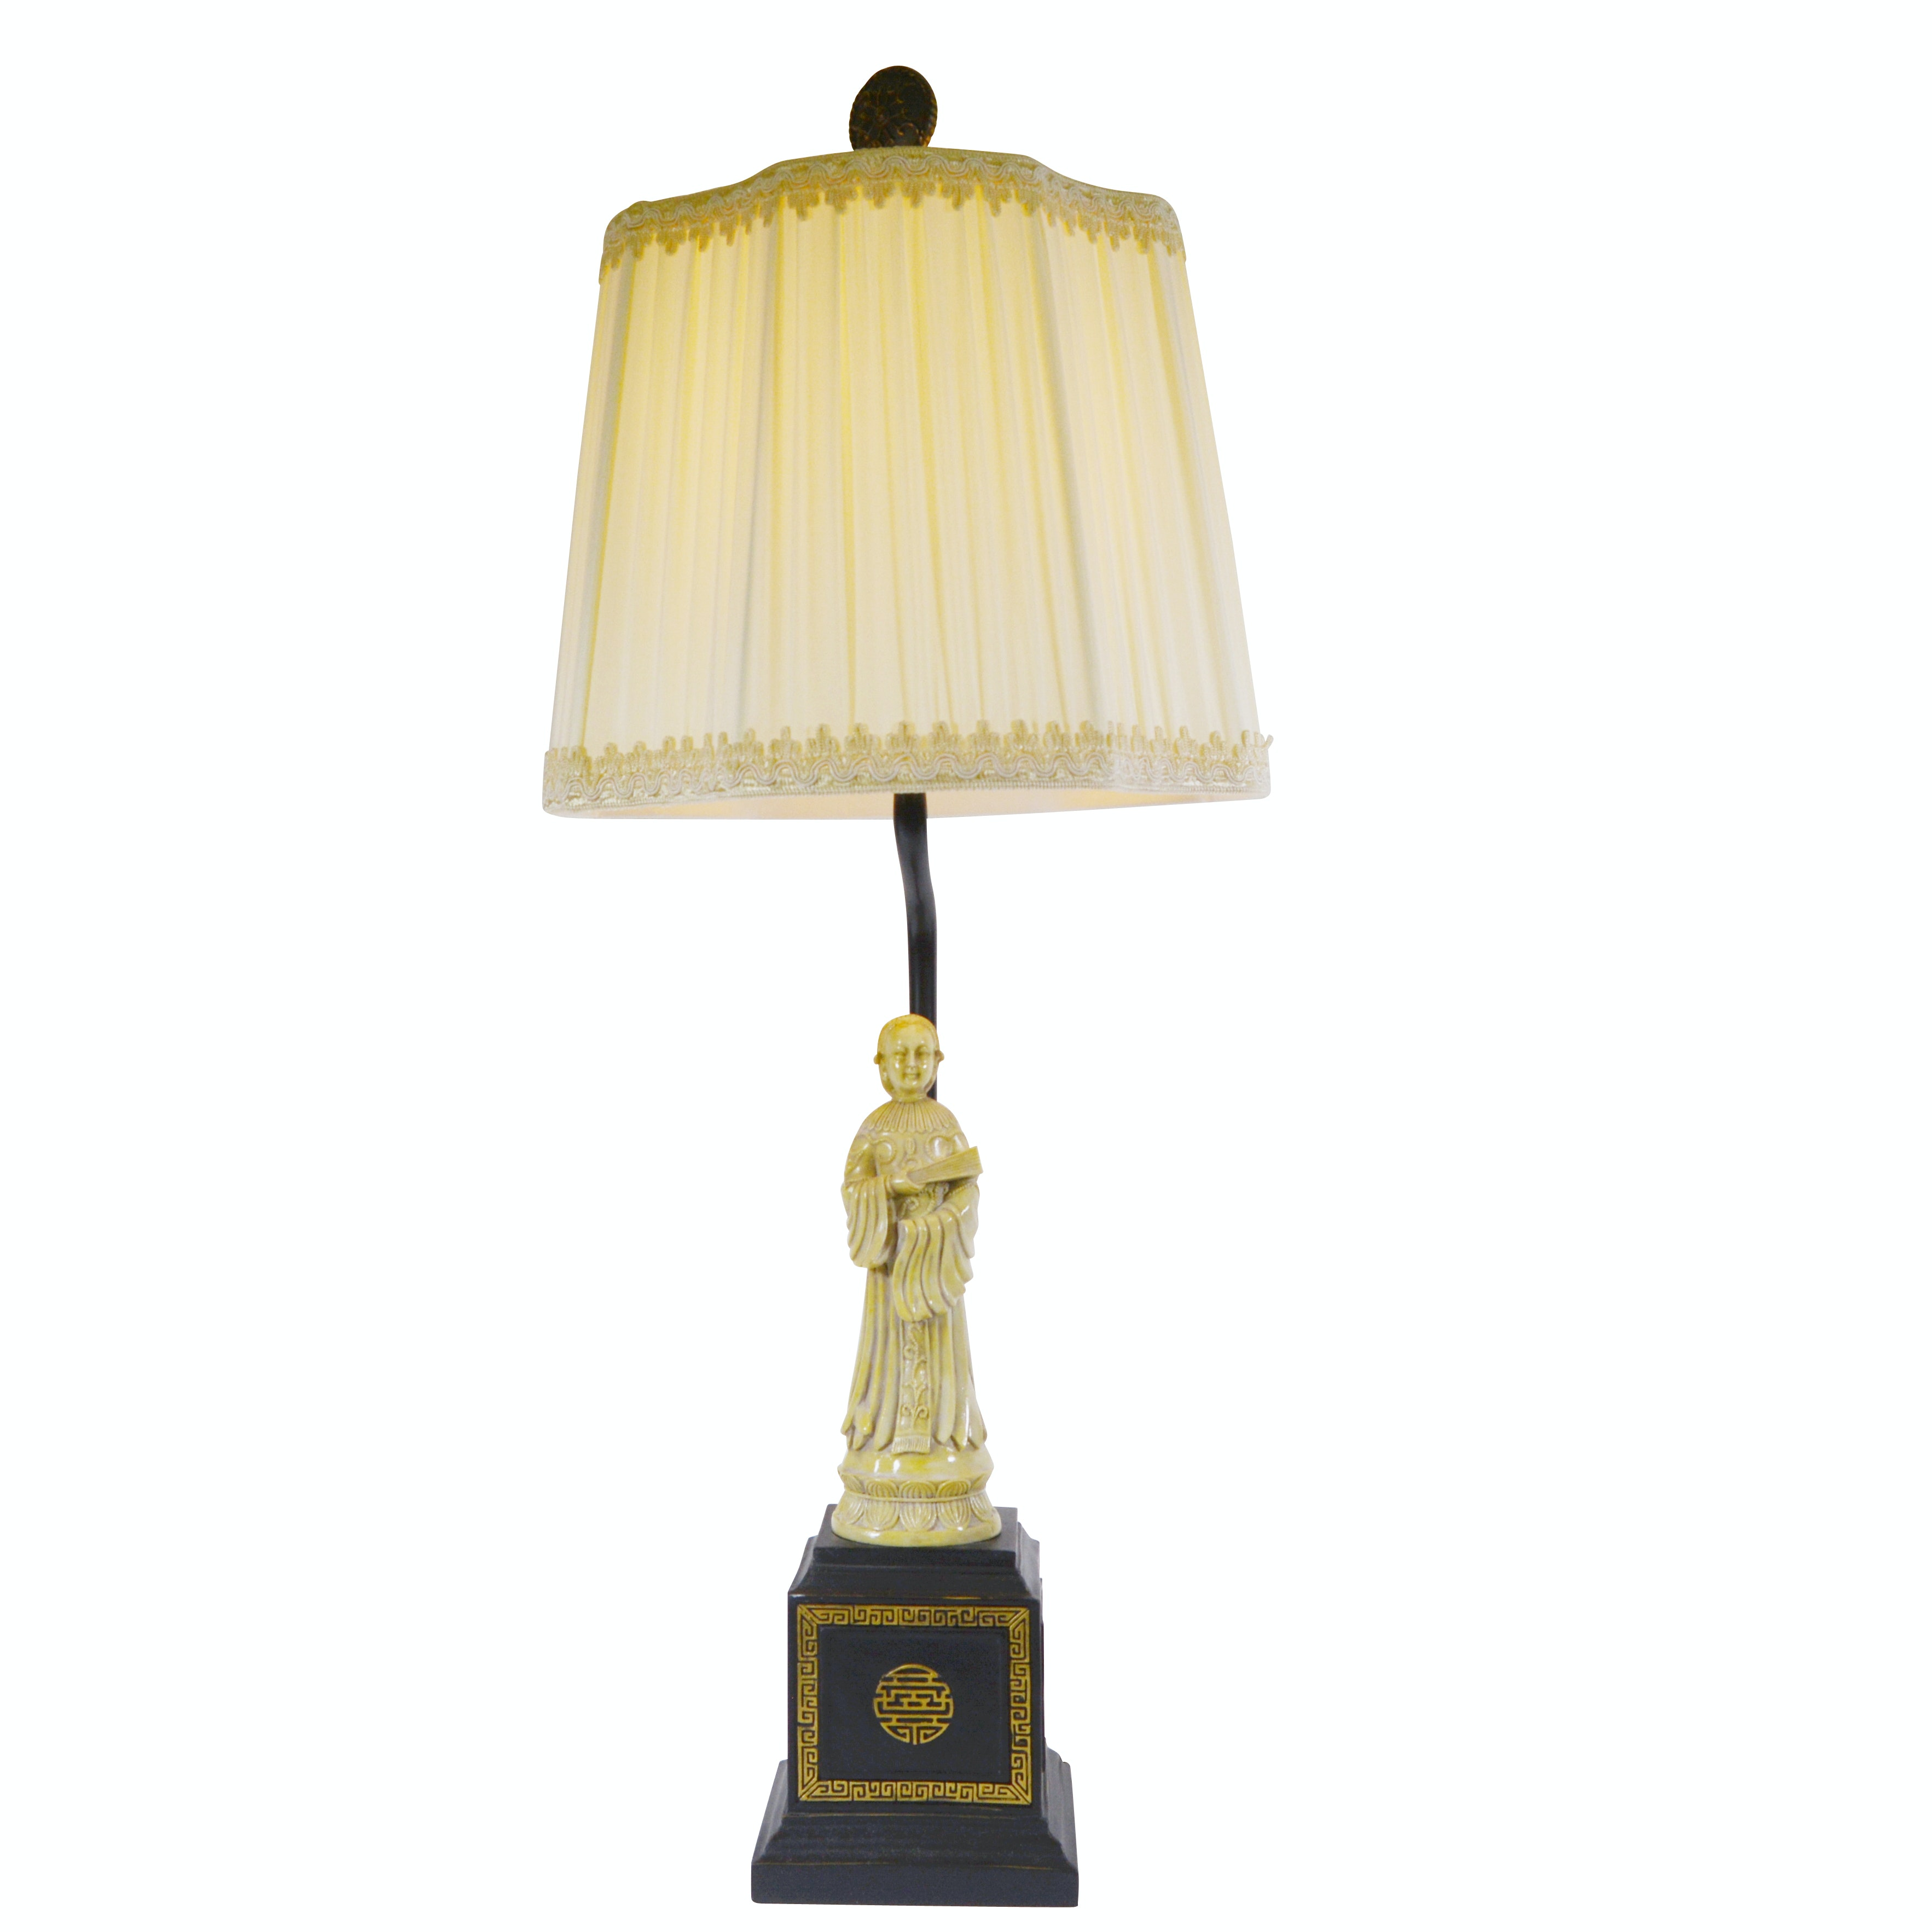 Chinese Figural Resin Table Lamp